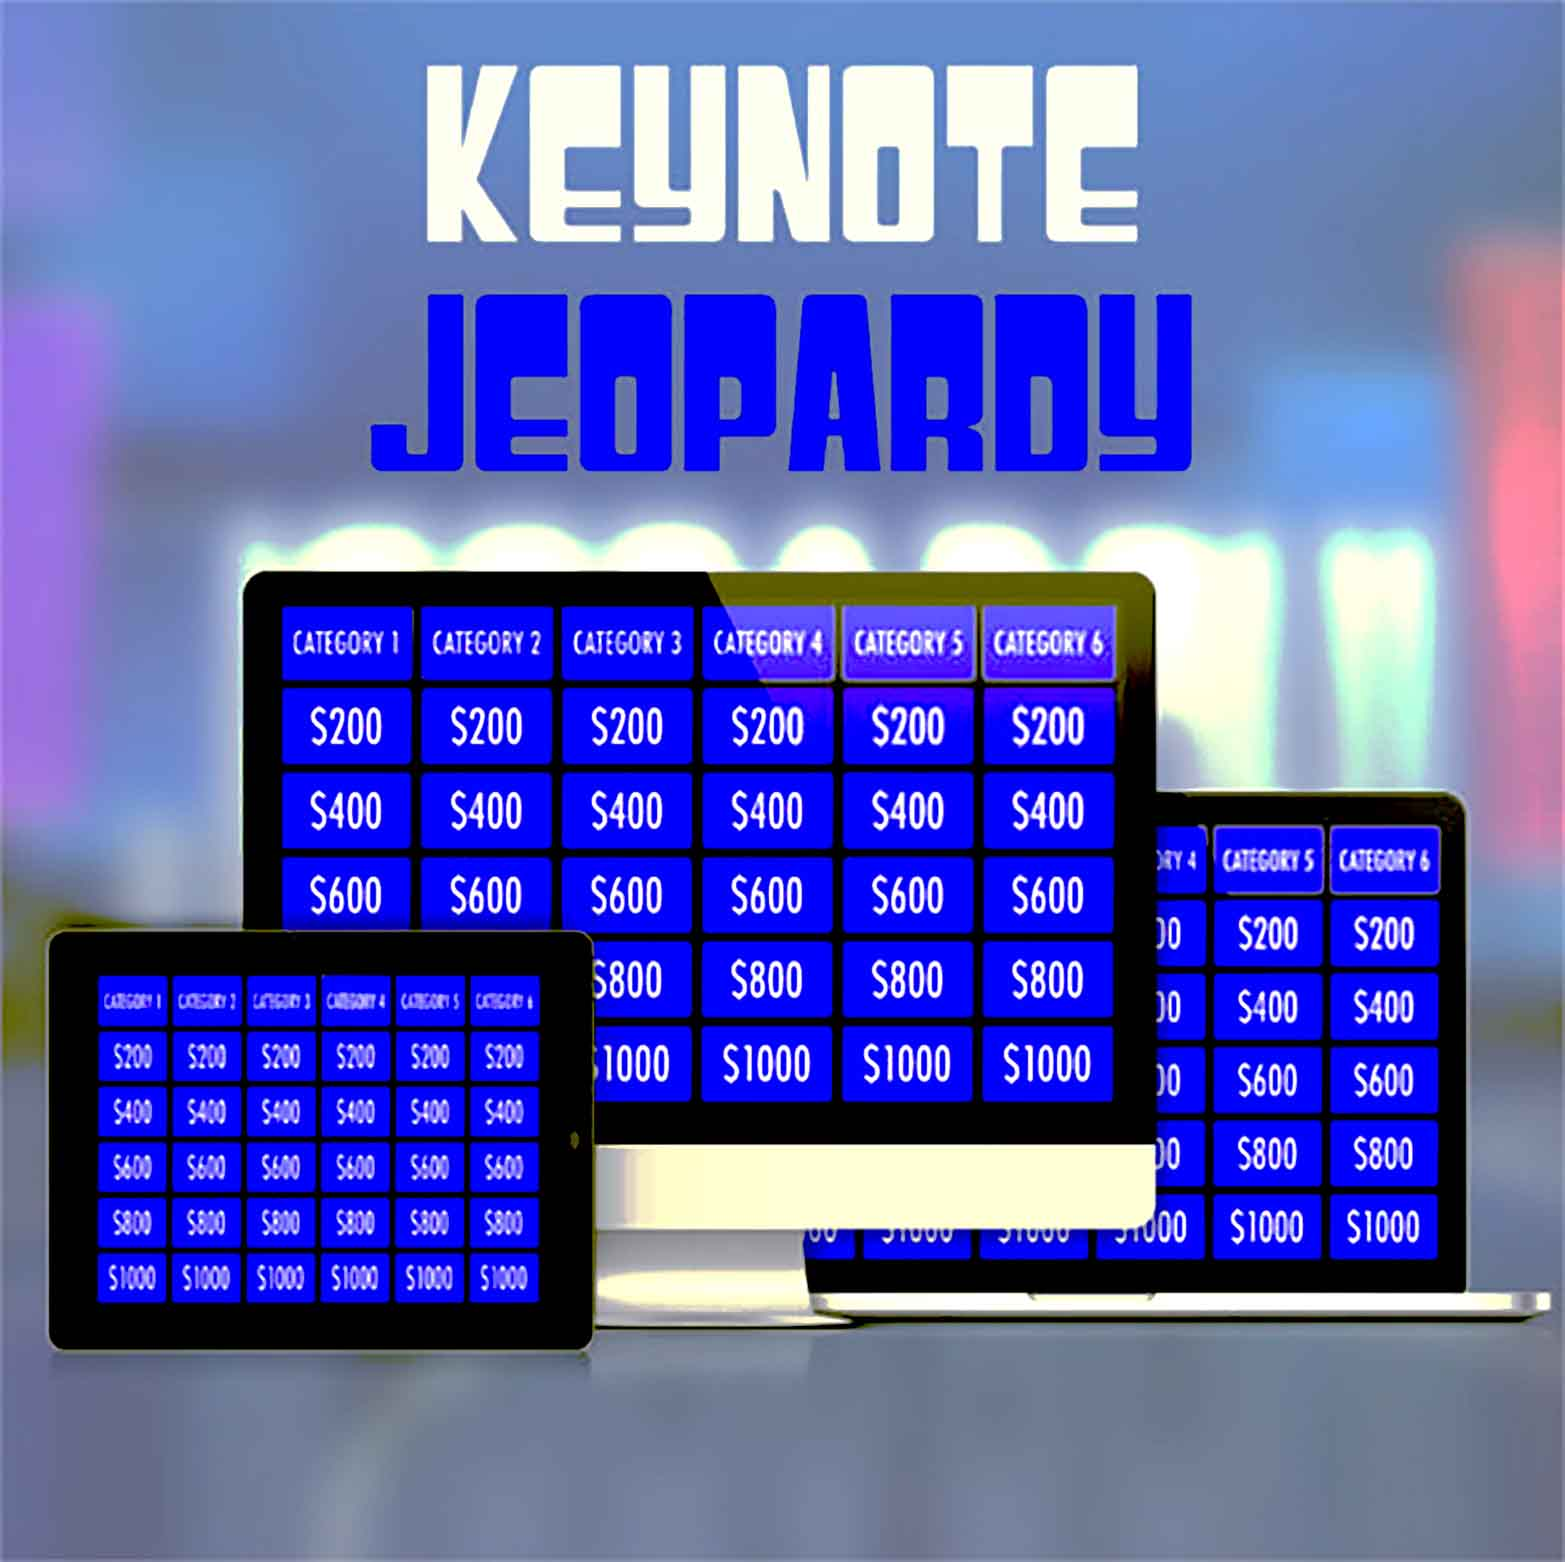 Download Instructions Keynote Jeopardy Template